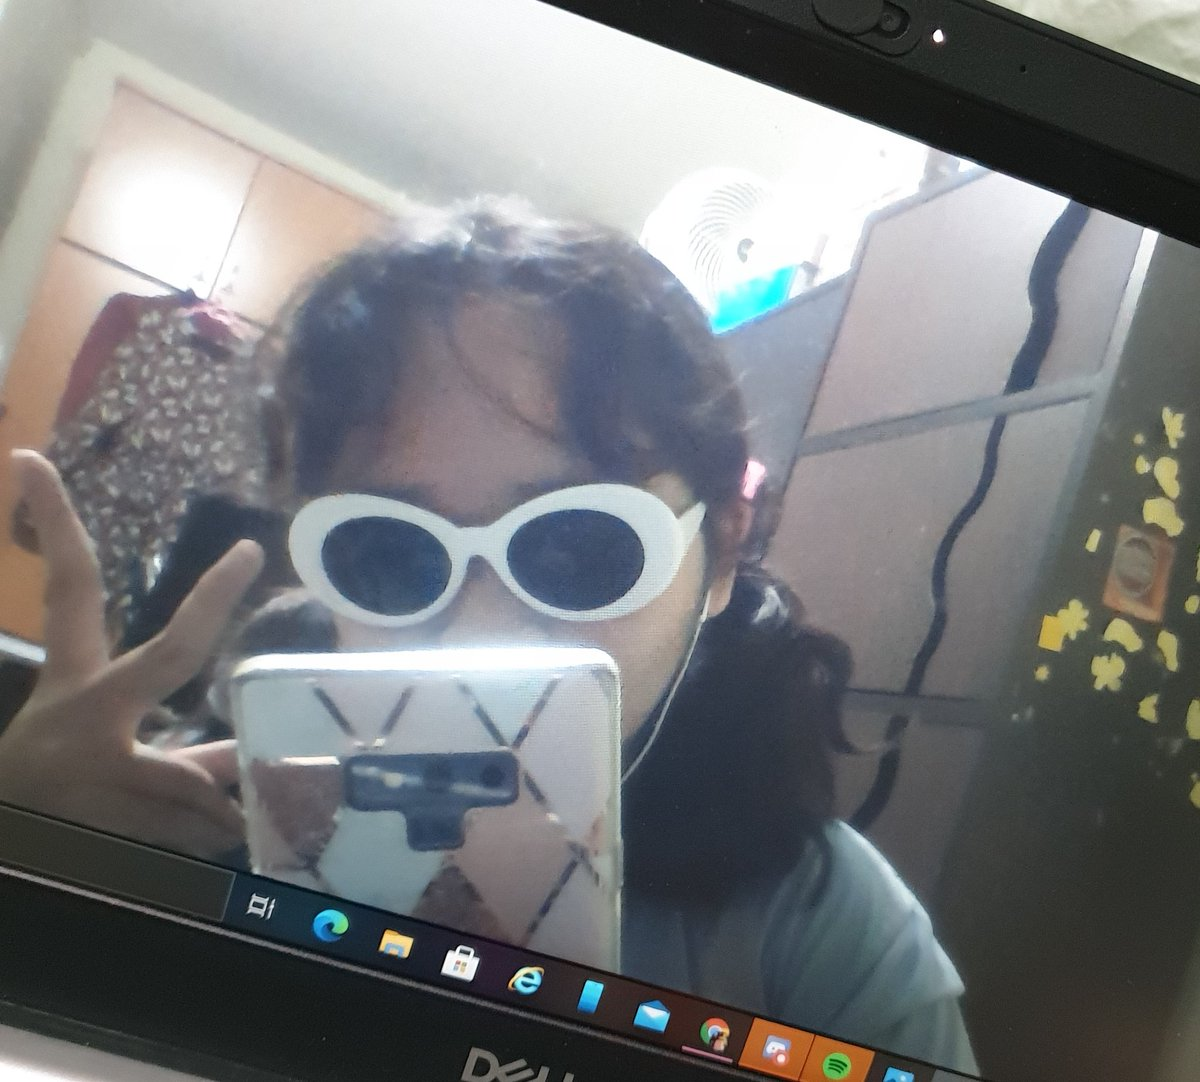 Ayo clout glasses frm my friendd  #dttwtselfieday [rts ok]